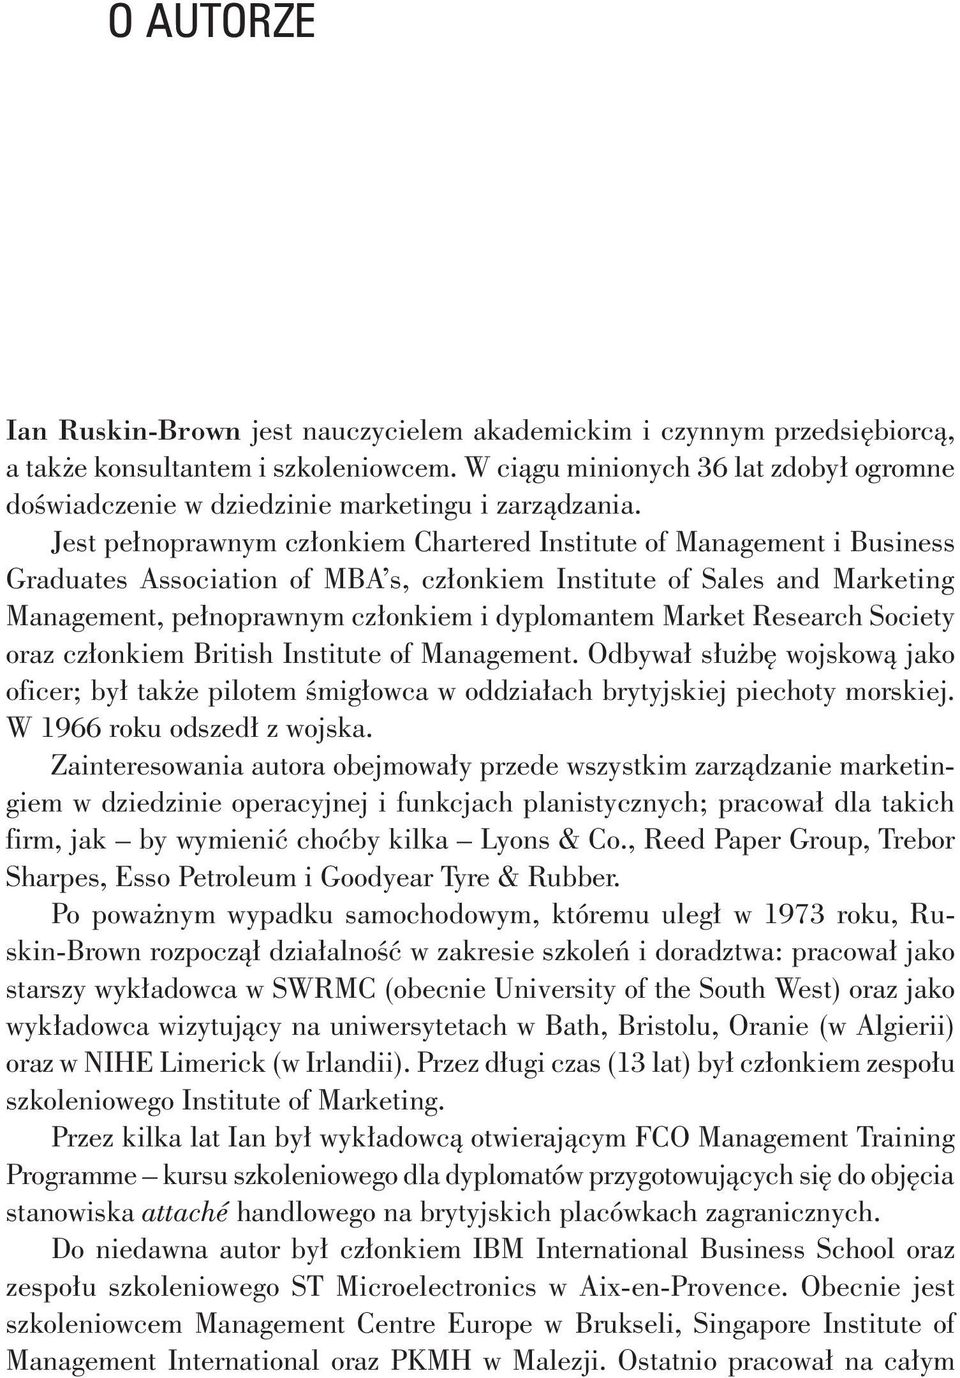 Jest pełnoprawnym członkiem Chartered Institute of Management i Business Graduates Association of MBA s, członkiem Institute of Sales and Marketing Management, pełnoprawnym członkiem i dyplomantem